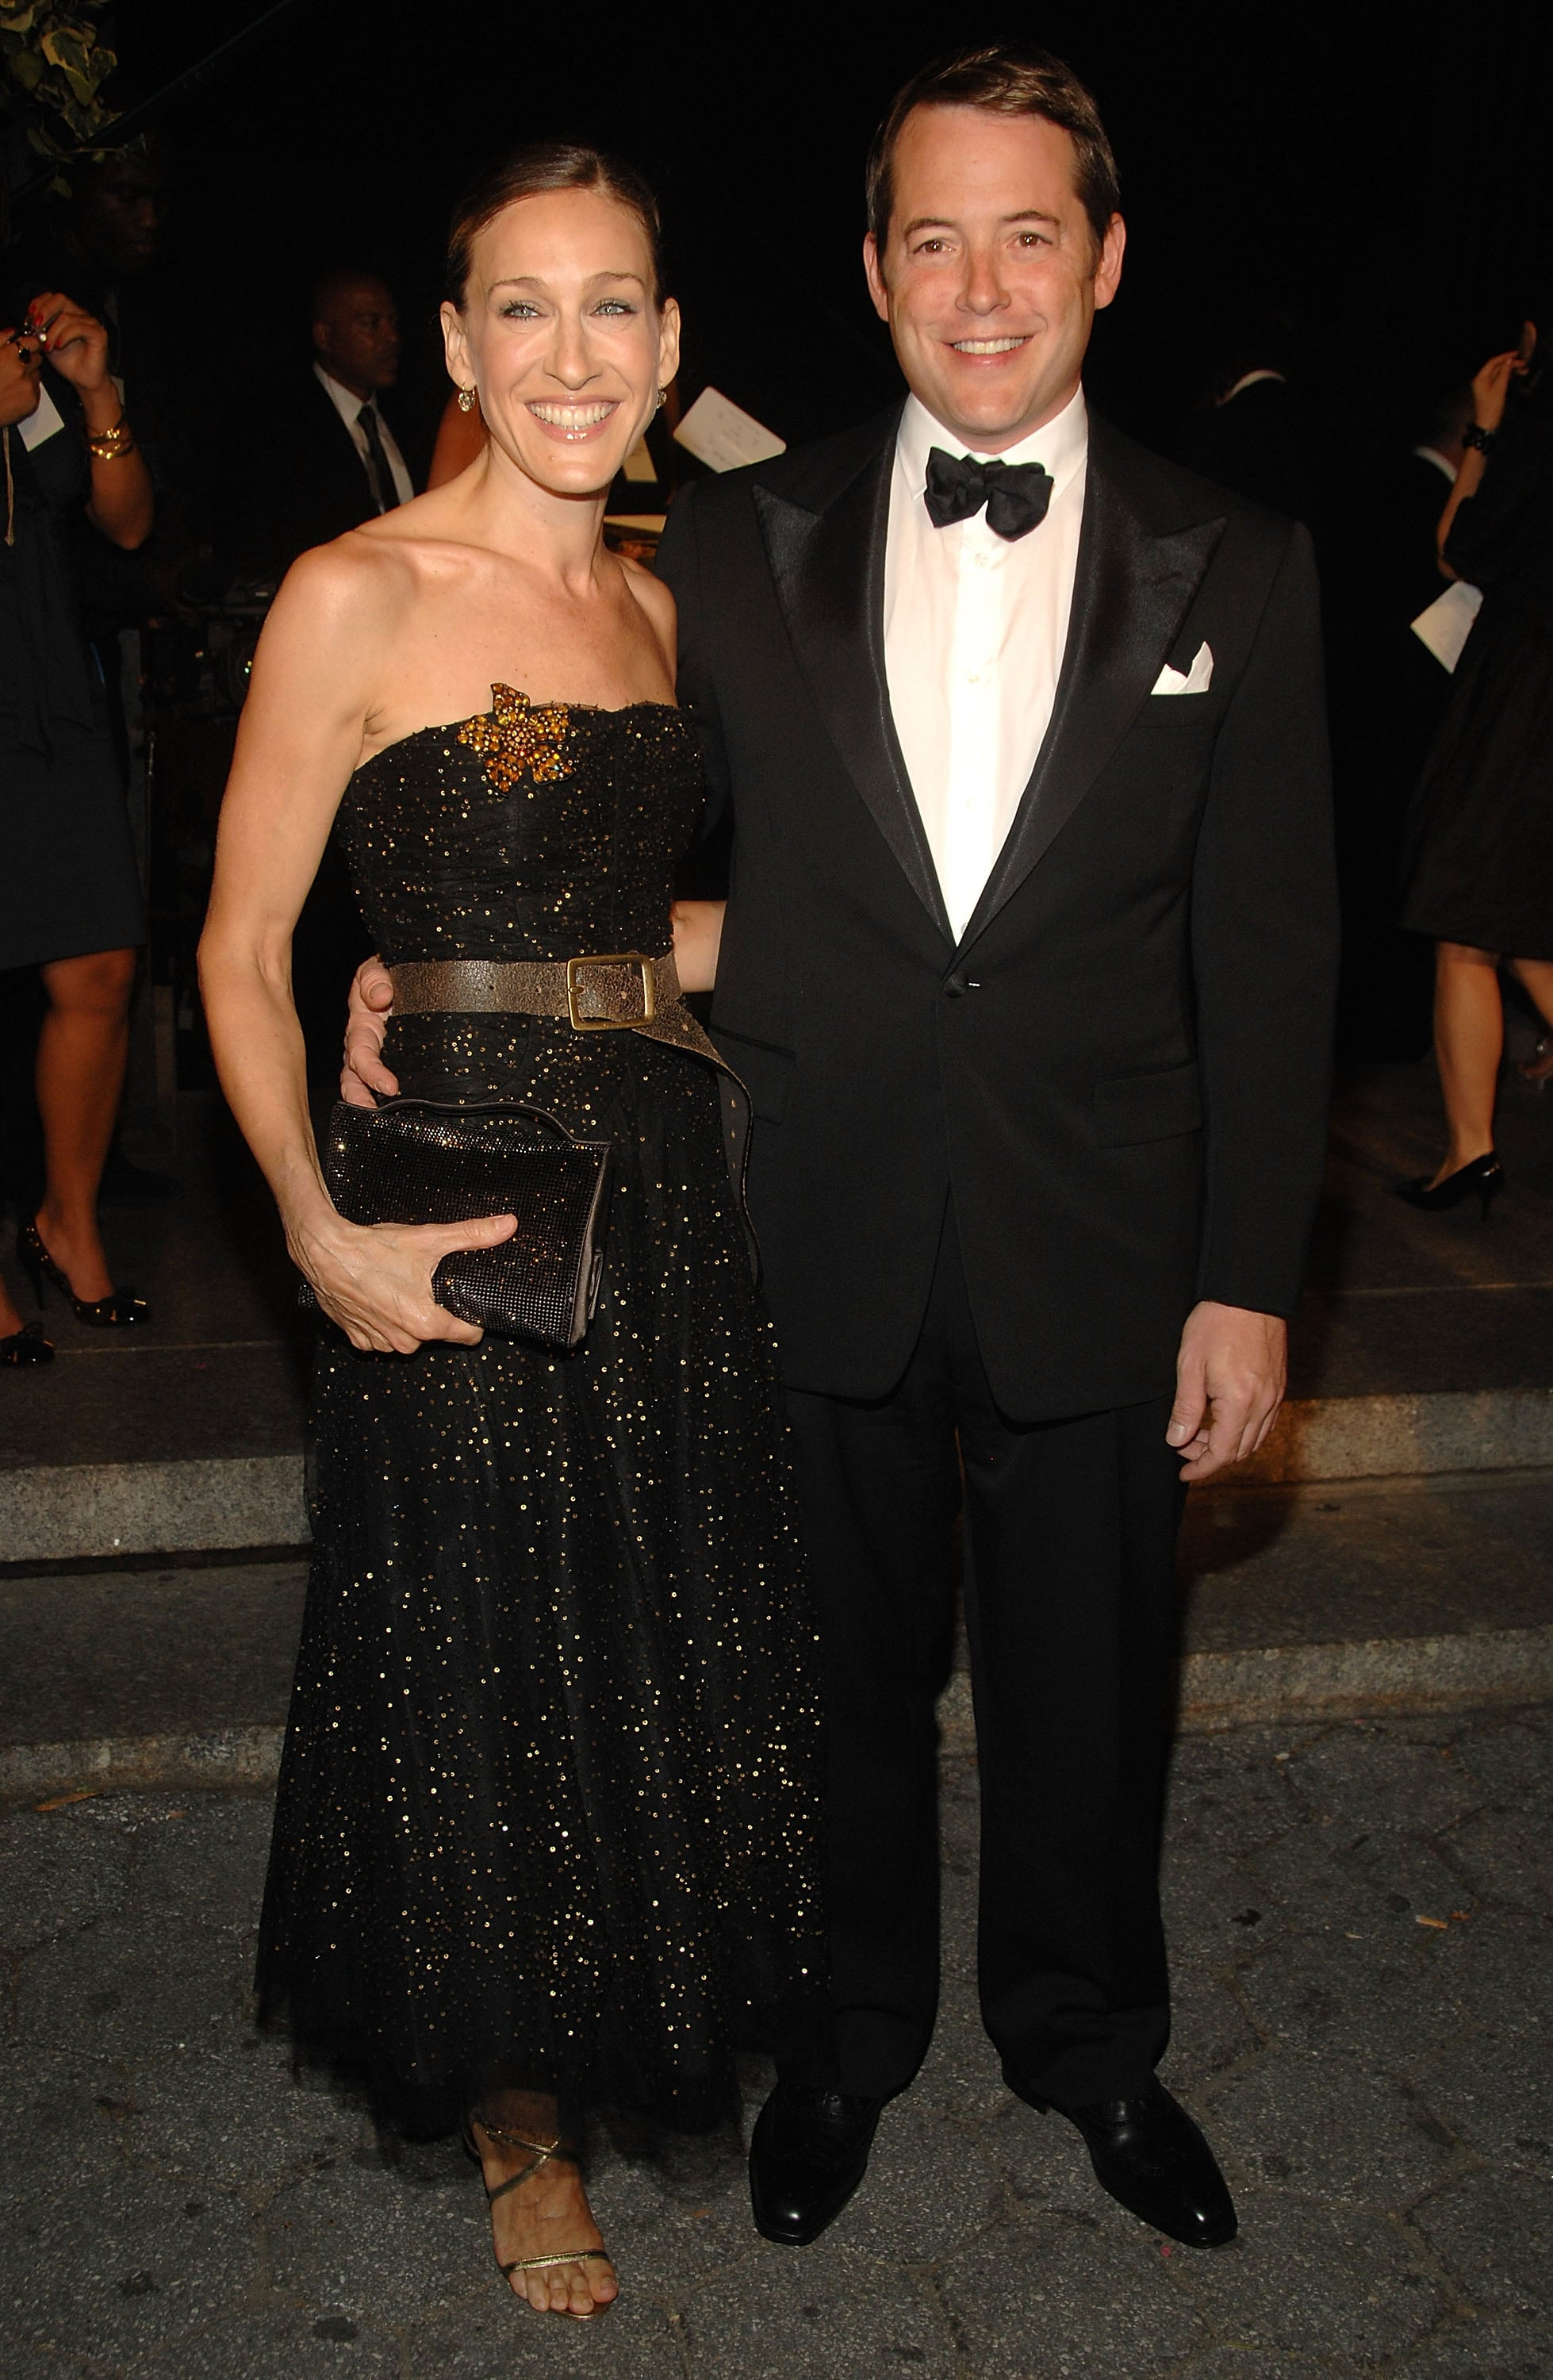 Sarah Jessica Parker and Matthew Broderick dressed up to attend Ralph Lauren's Spring show at the Central Park Conservatory Garden in February 2008.